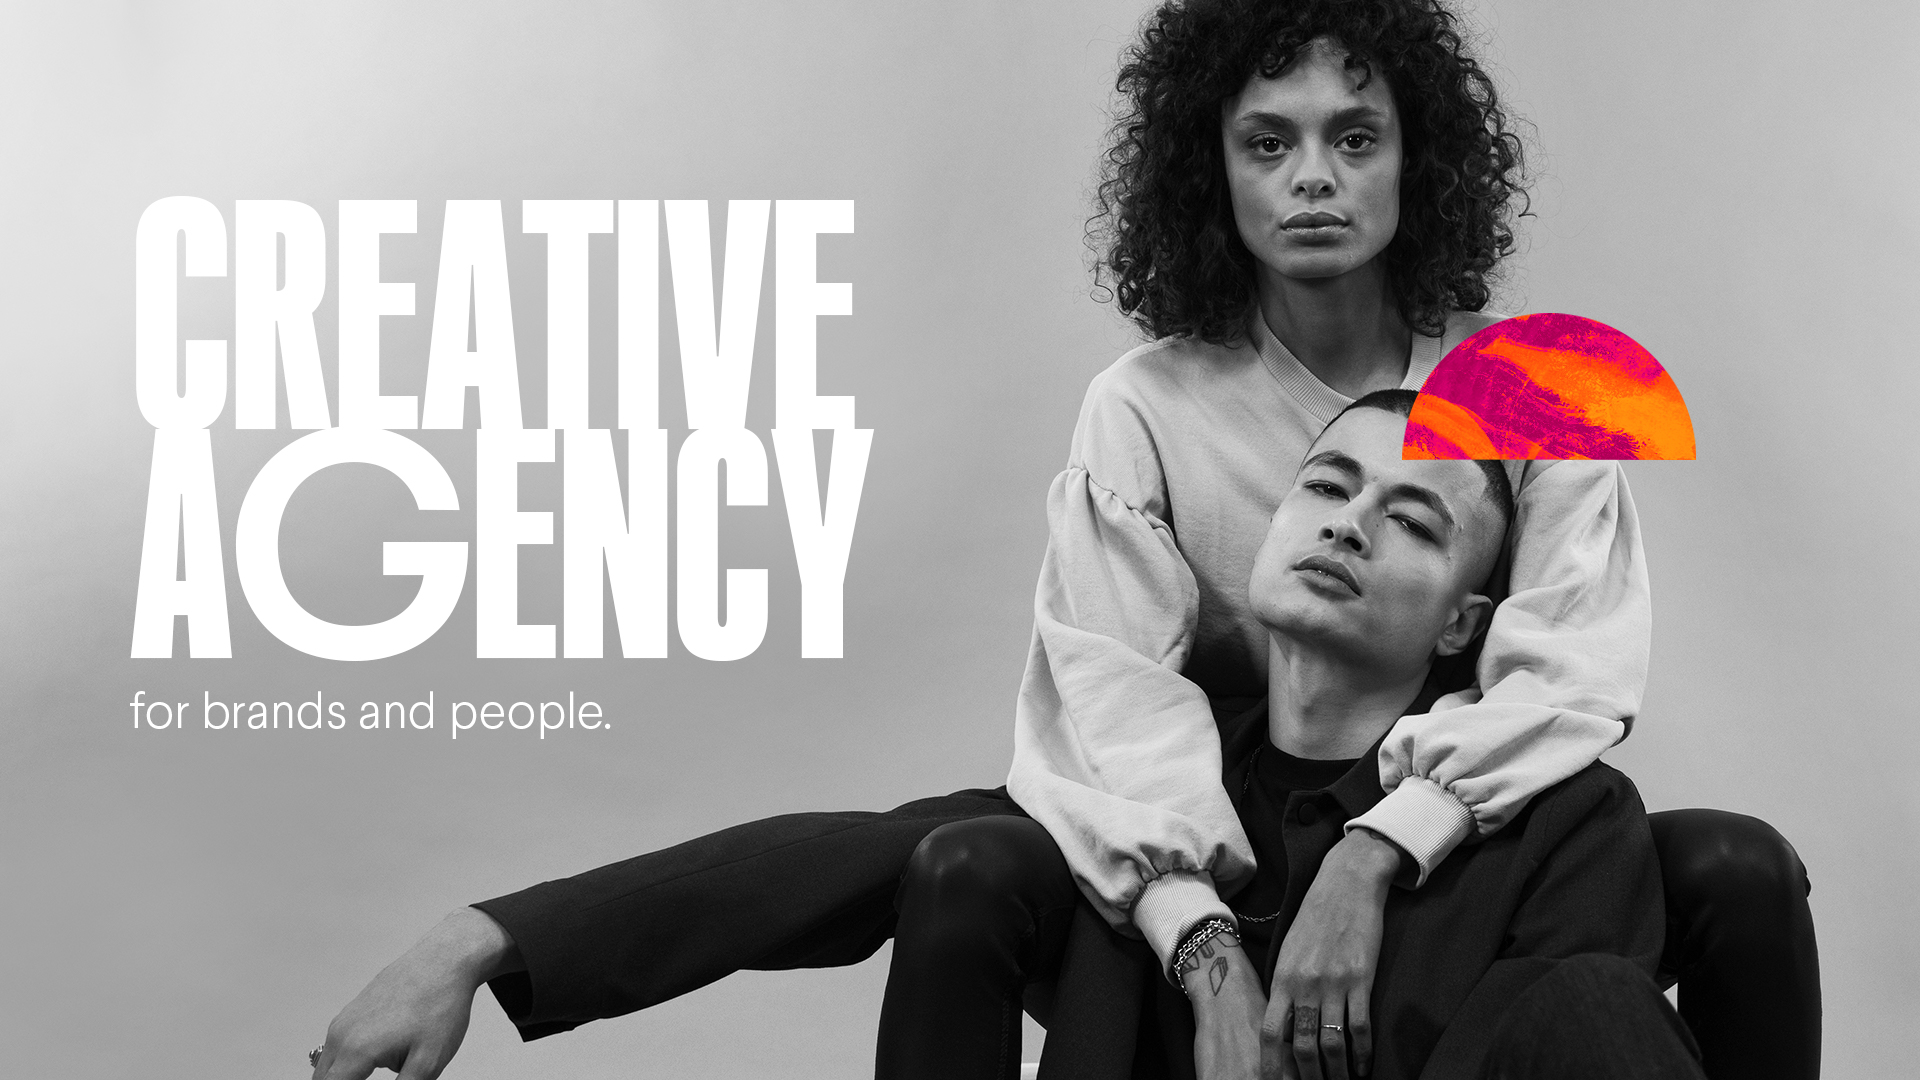 Creative Agency for Brands and People